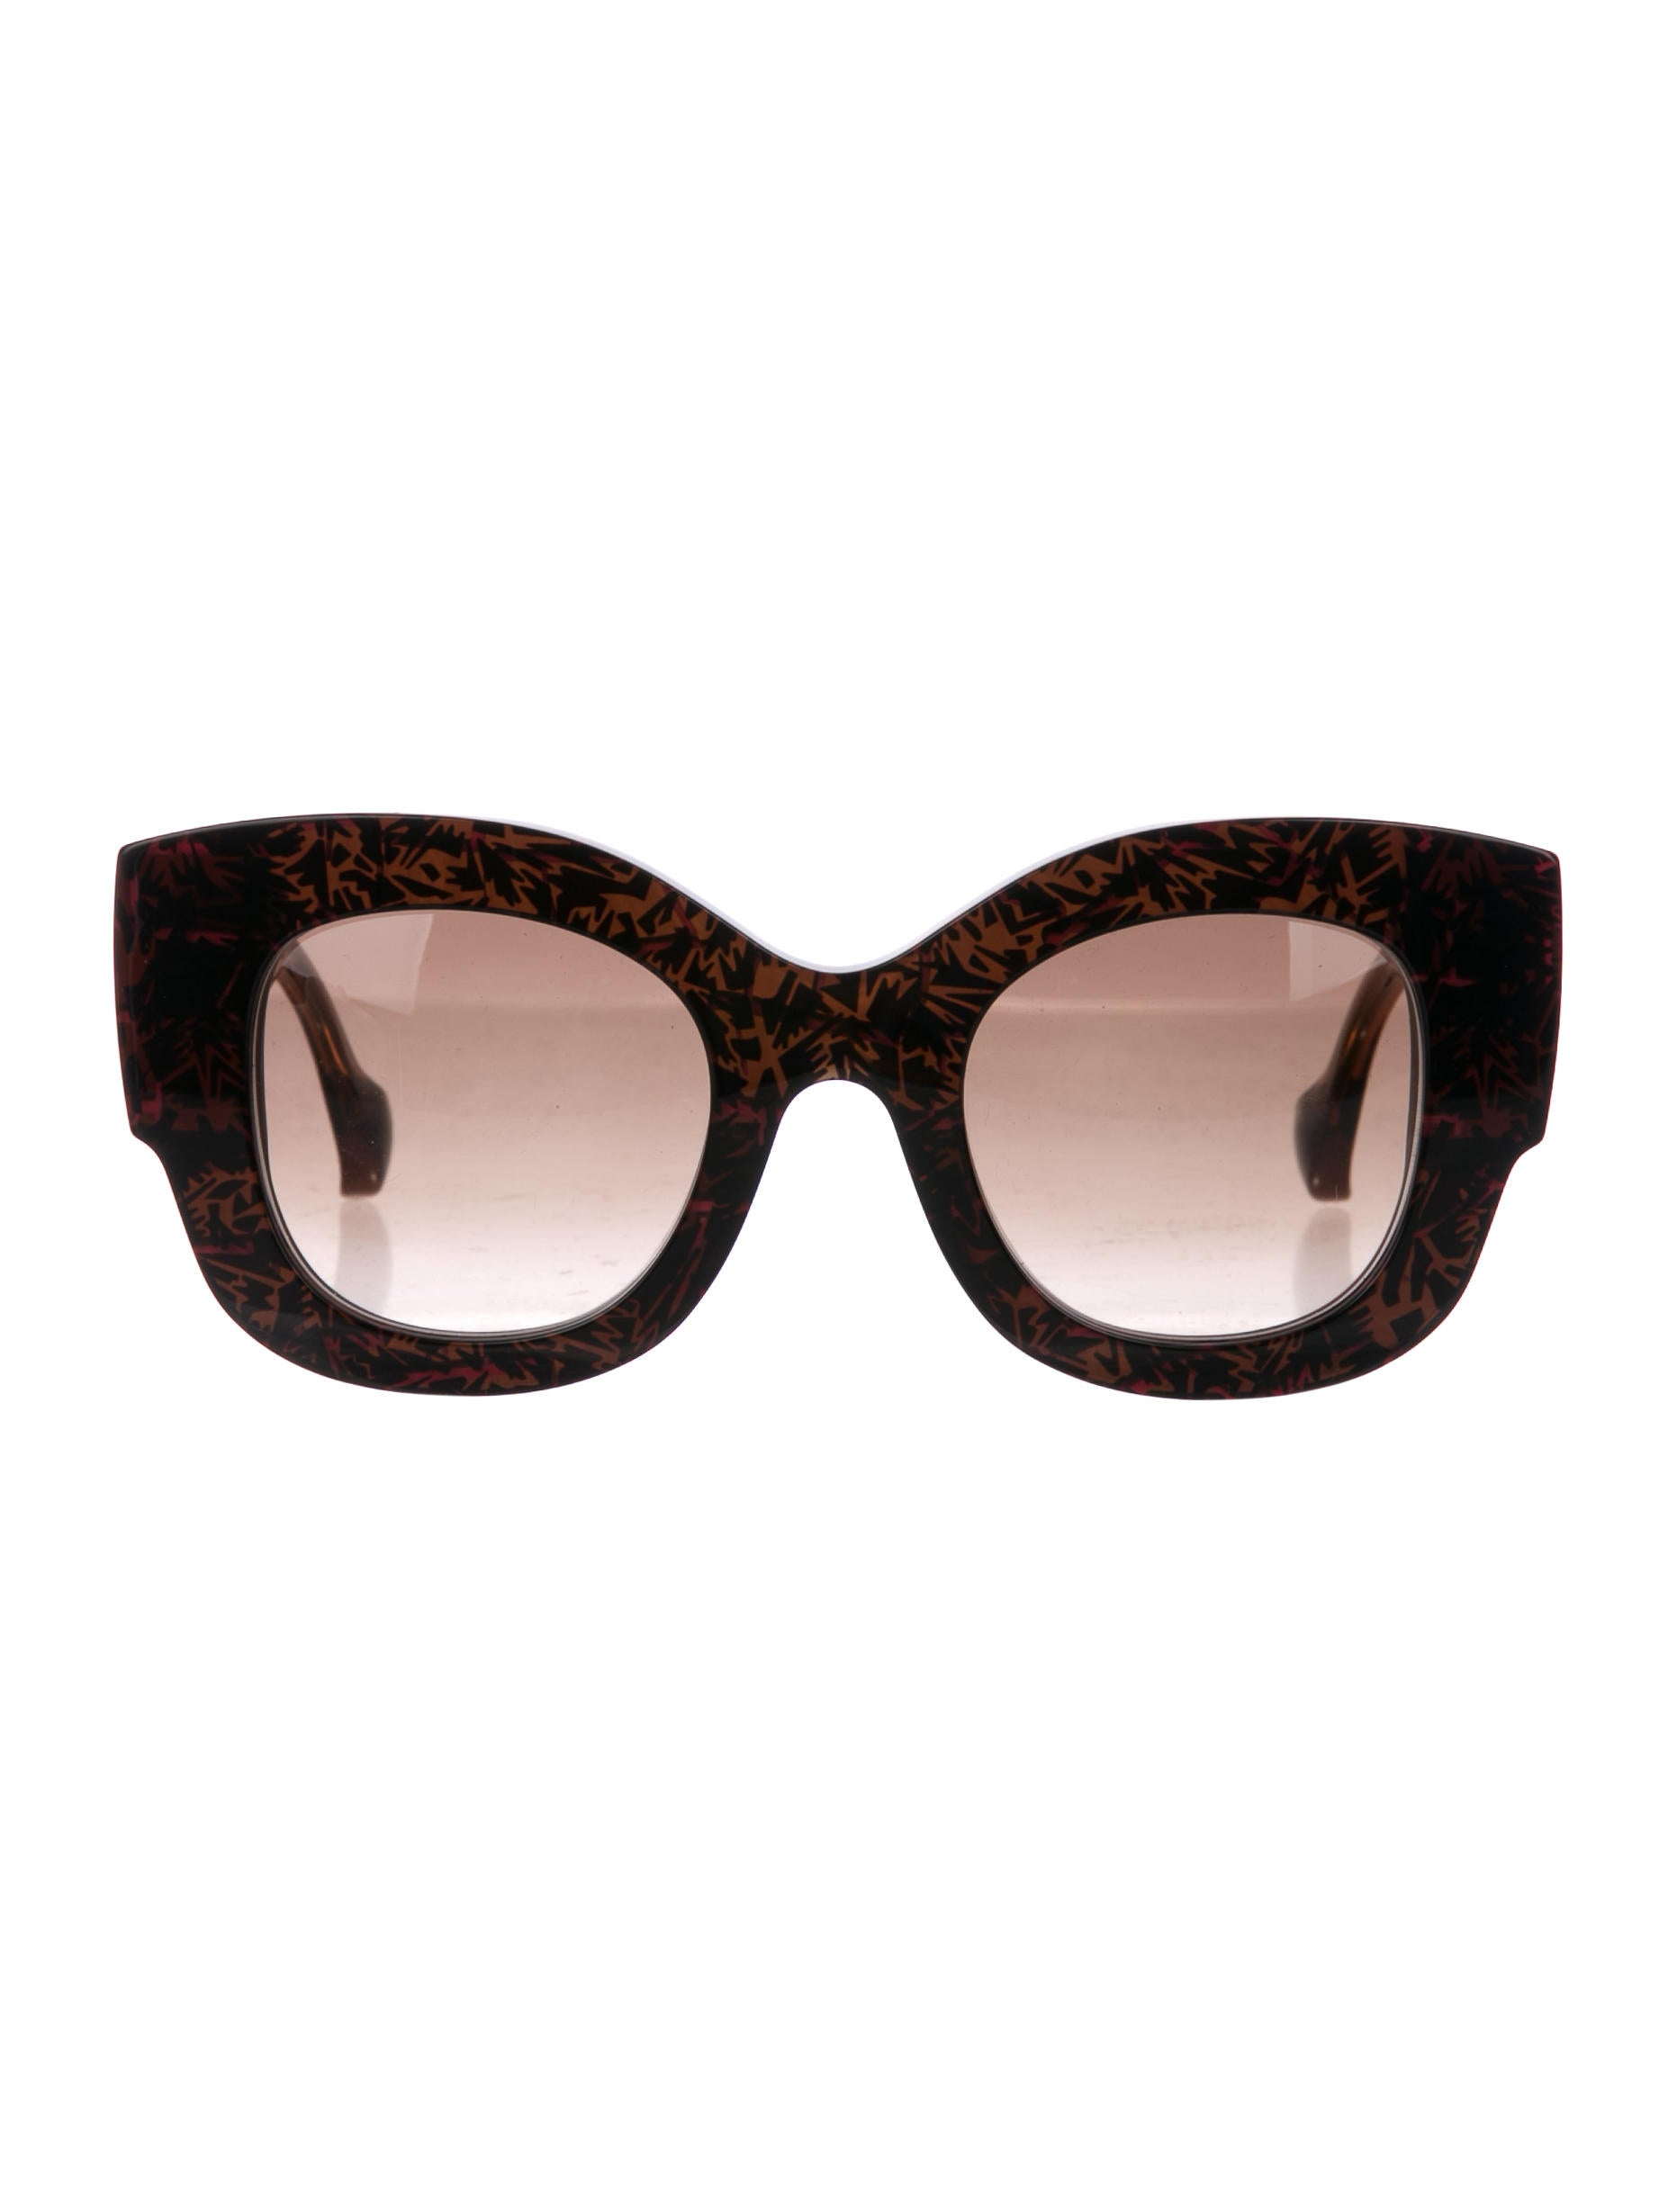 8bafffc20a9c Fendi x Thierry Lasry 2018 Sylvy Oversize Sunglasses - Accessories ...